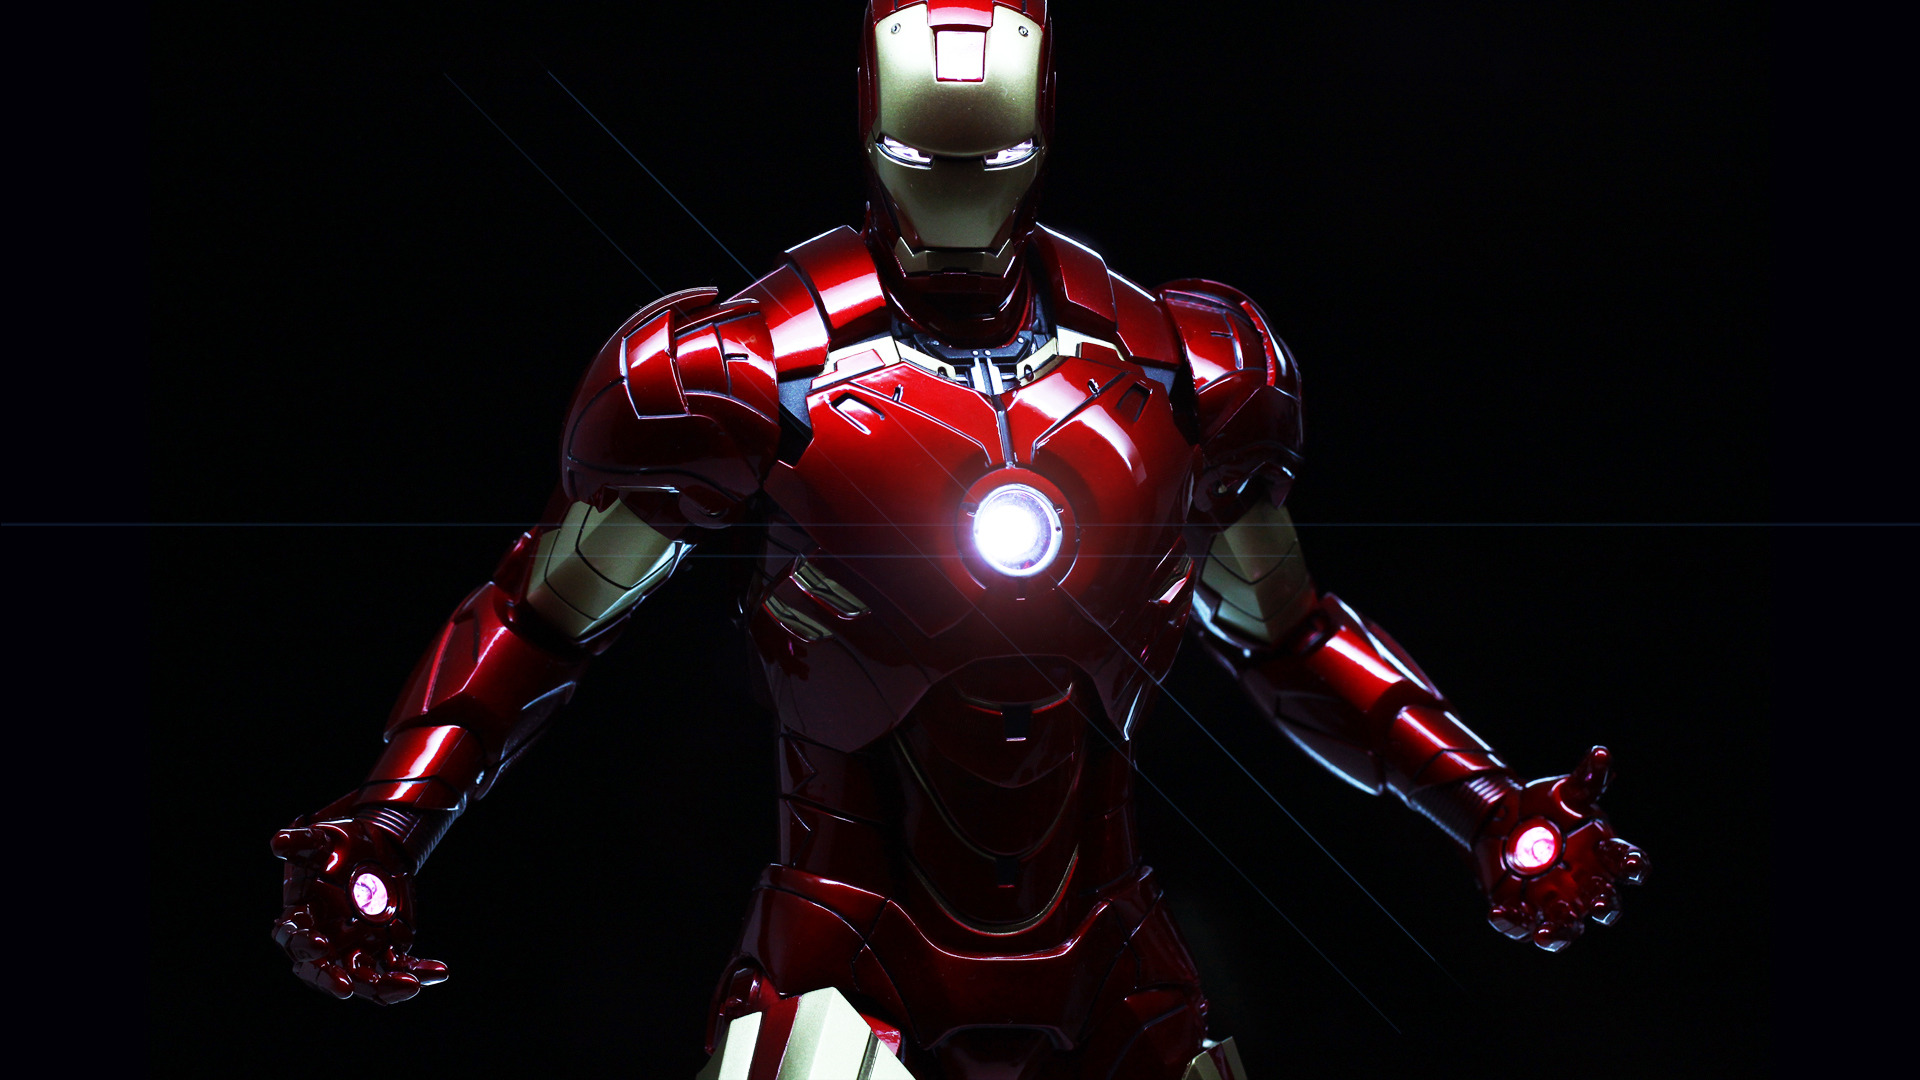 Iron Man Wallpapers for Desktop - WallpaperSafari